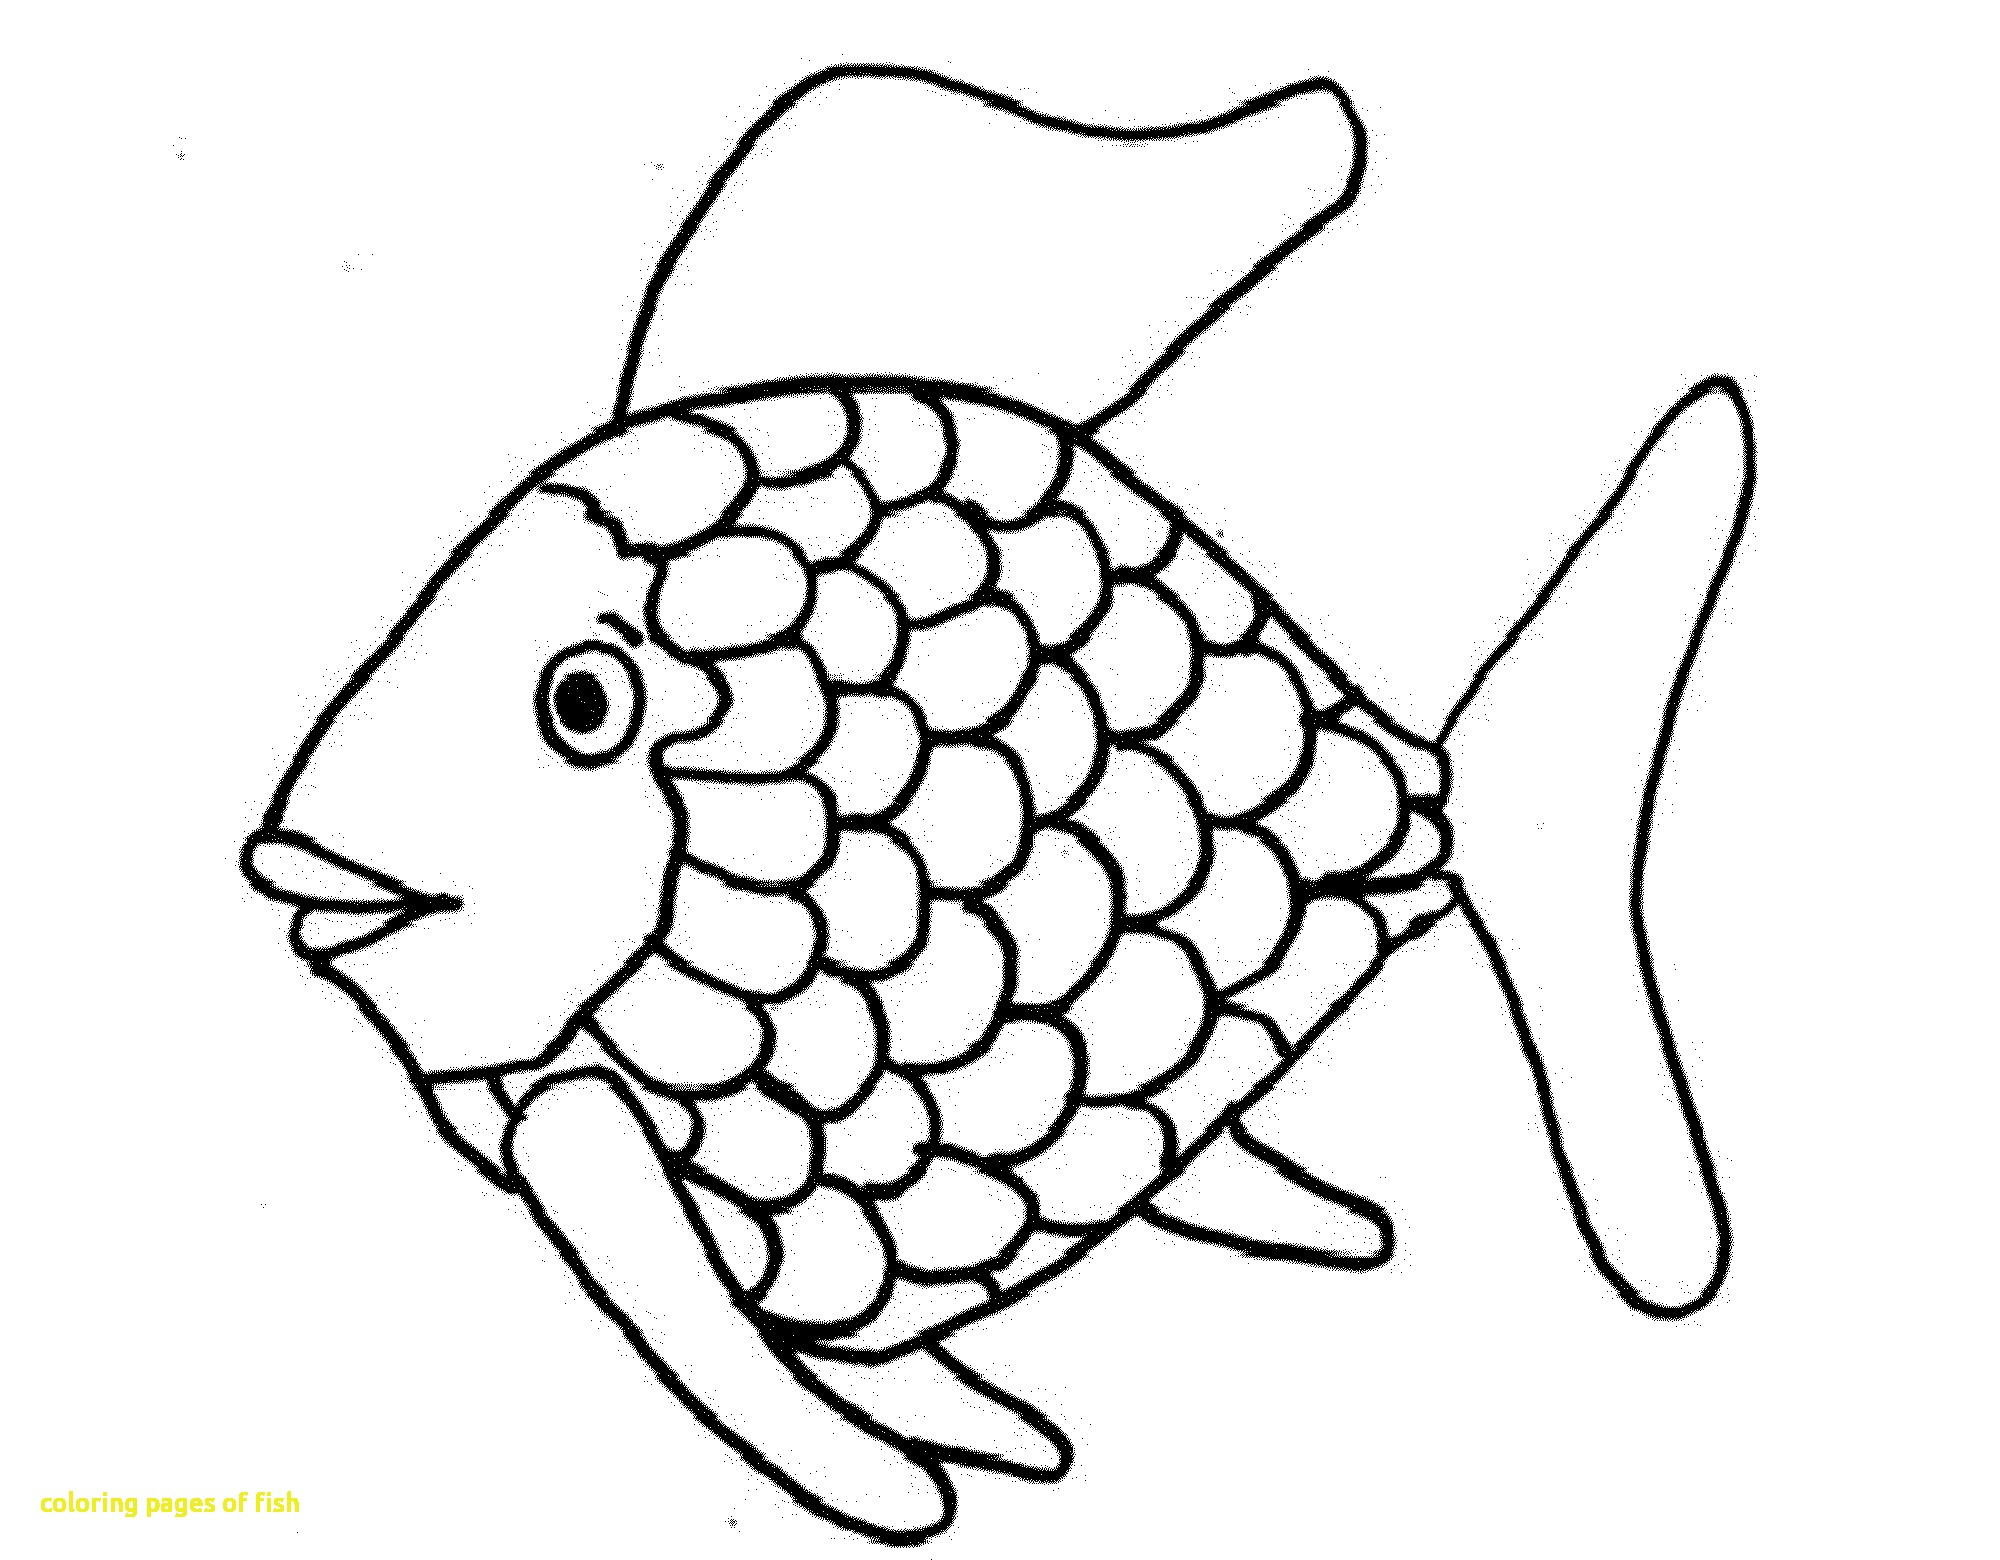 images of fish for colouring bass fish outline coloring pages bass fish outline colouring fish images of for